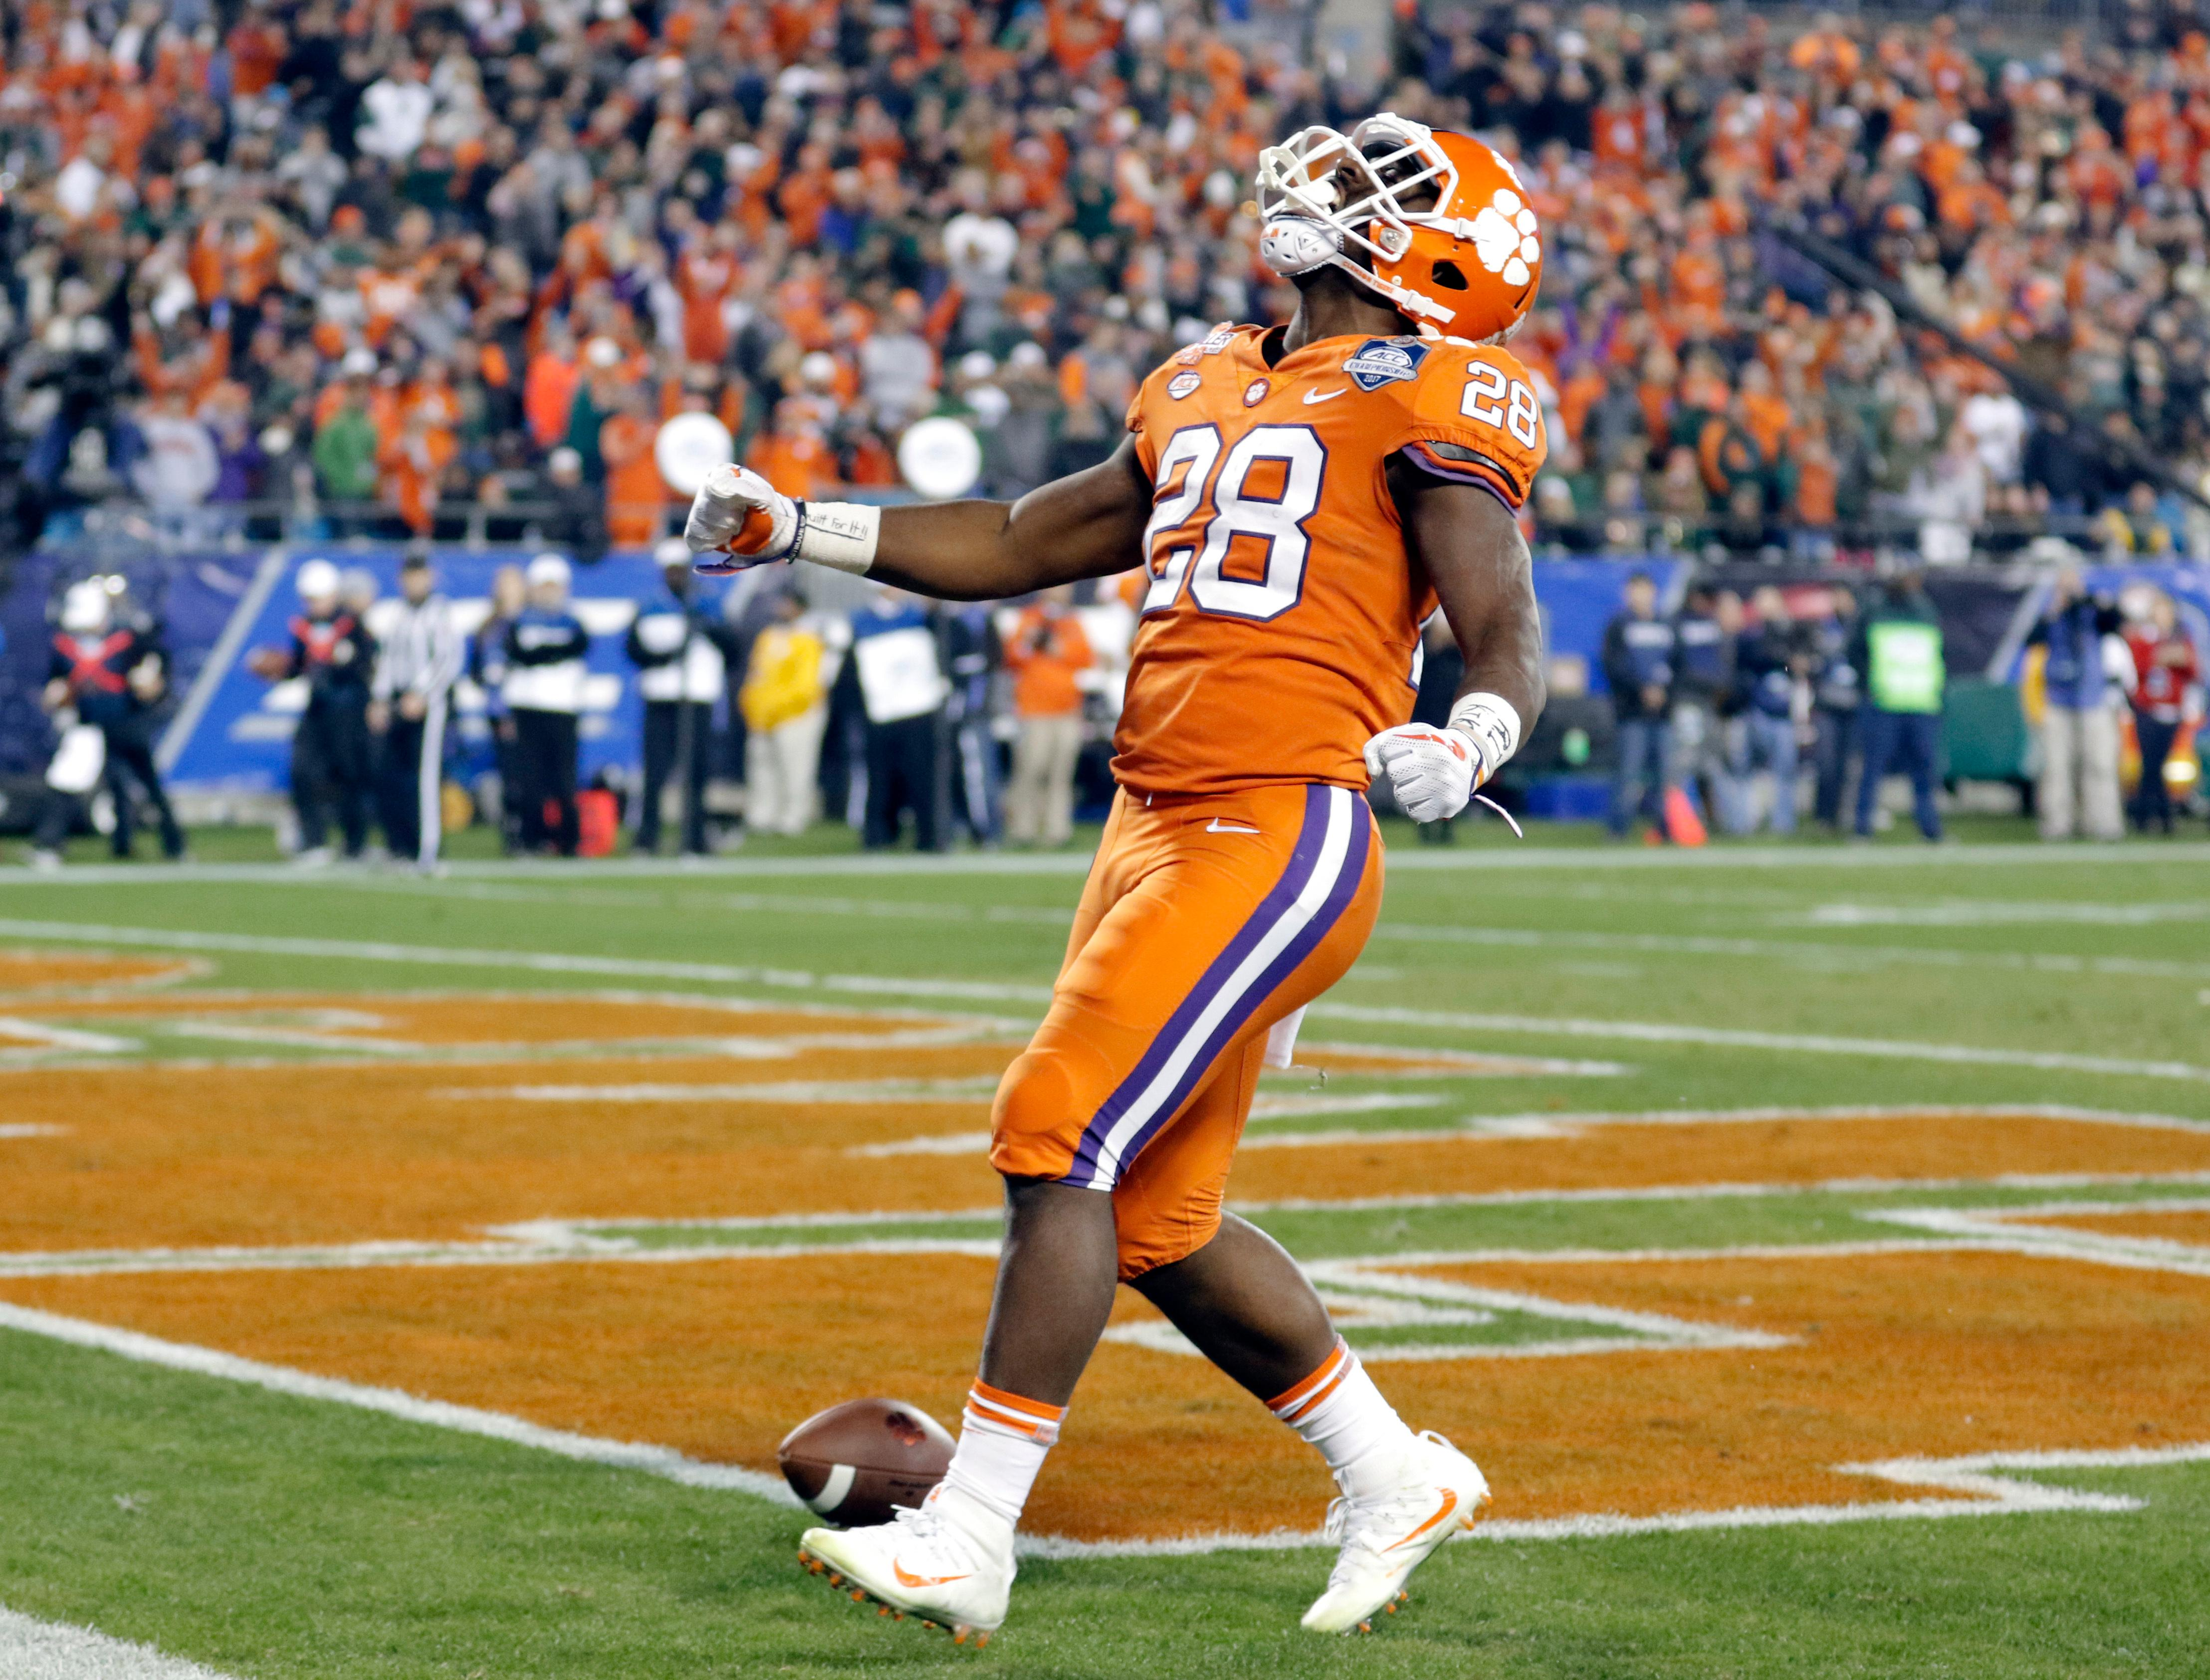 Clemson's Tavien Feaster (28) celebrates his touchdown run against Miami during the second half of the Atlantic Coast Conference championship NCAA college football game in Charlotte, N.C., Saturday, Dec. 2, 2017. (AP Photo/Bob Leverone)